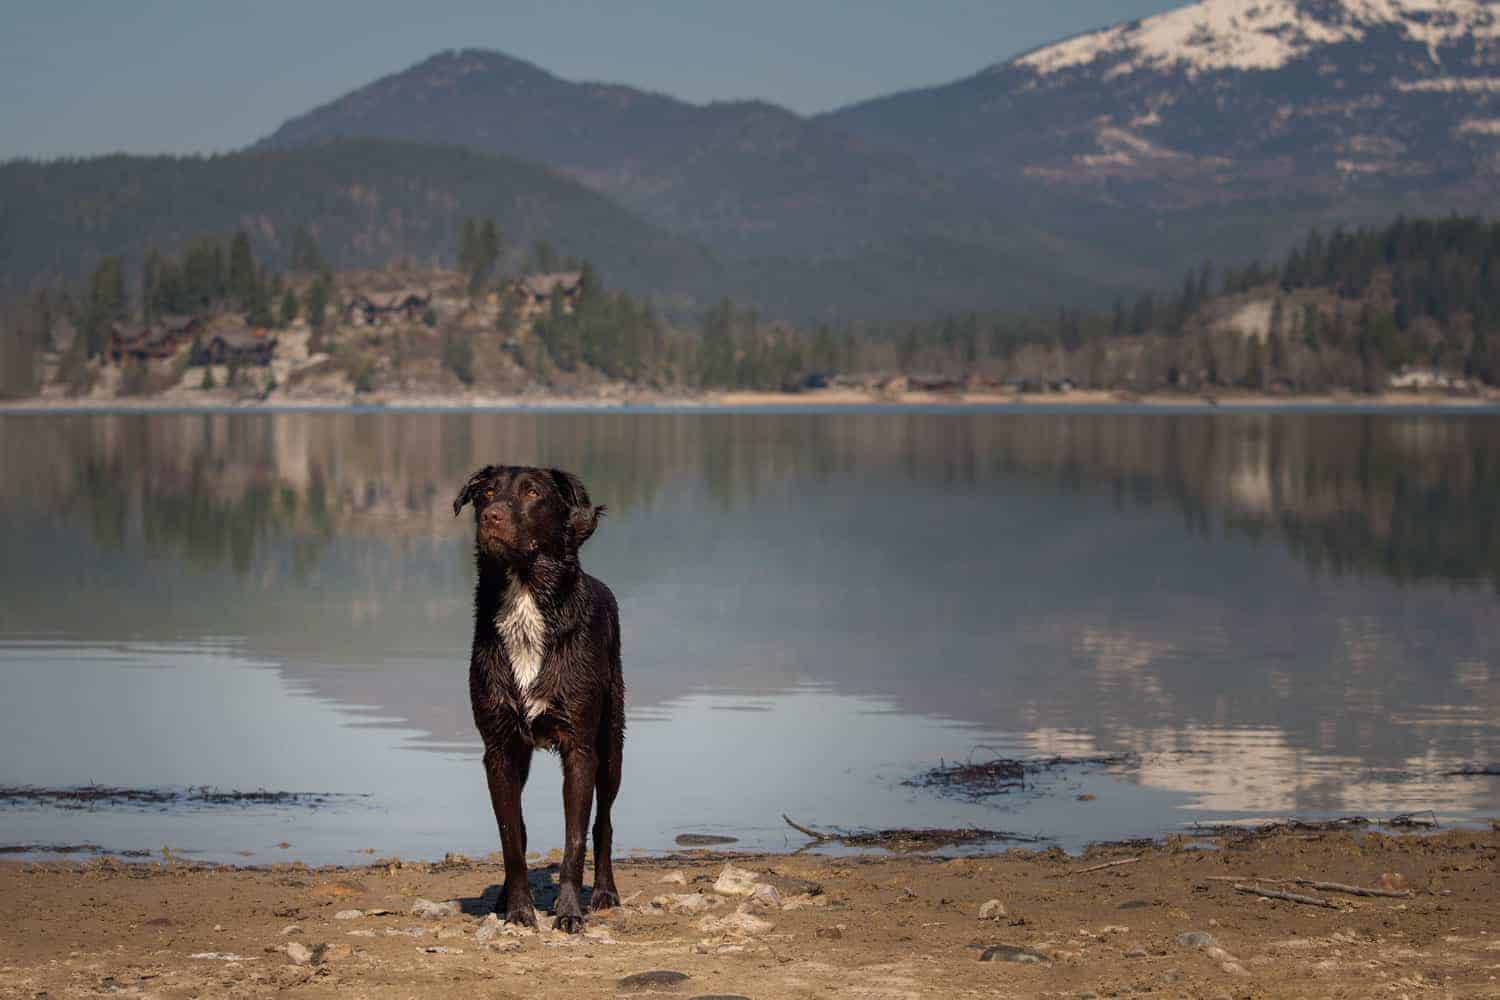 Labrador retriever at Springy Point campground in Sandpoint